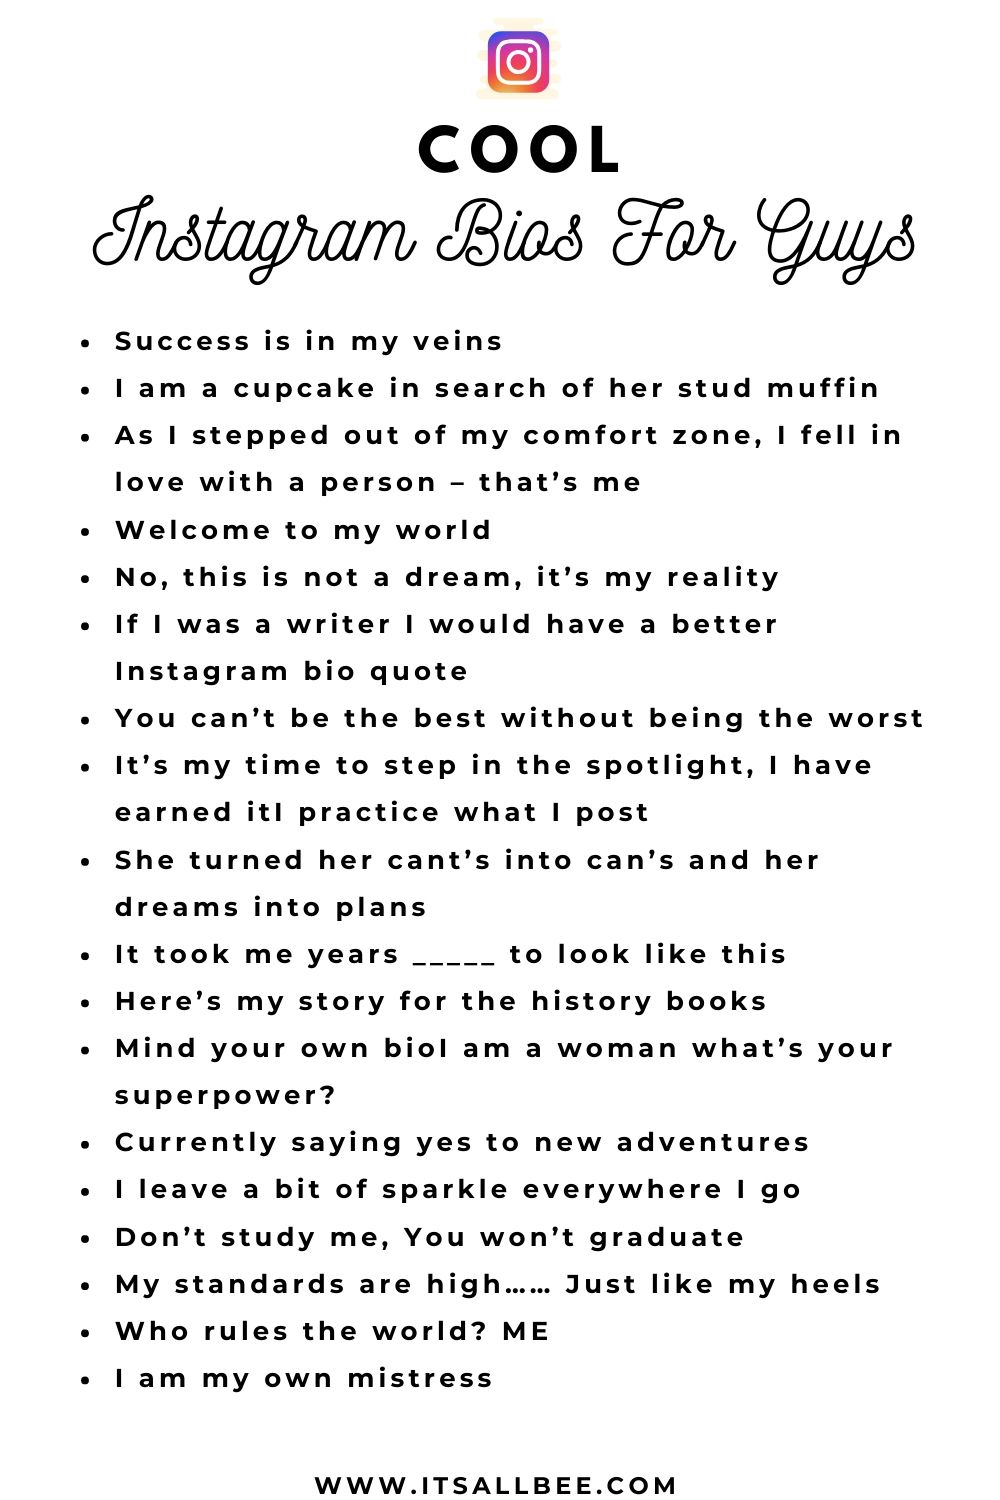 150 Quotes Captions Ideas For Instagram Bios For Guys Itsallbee Solo Travel Adventure Tips Insta Bio Quotes Instagram Bio Quotes Bio Quotes